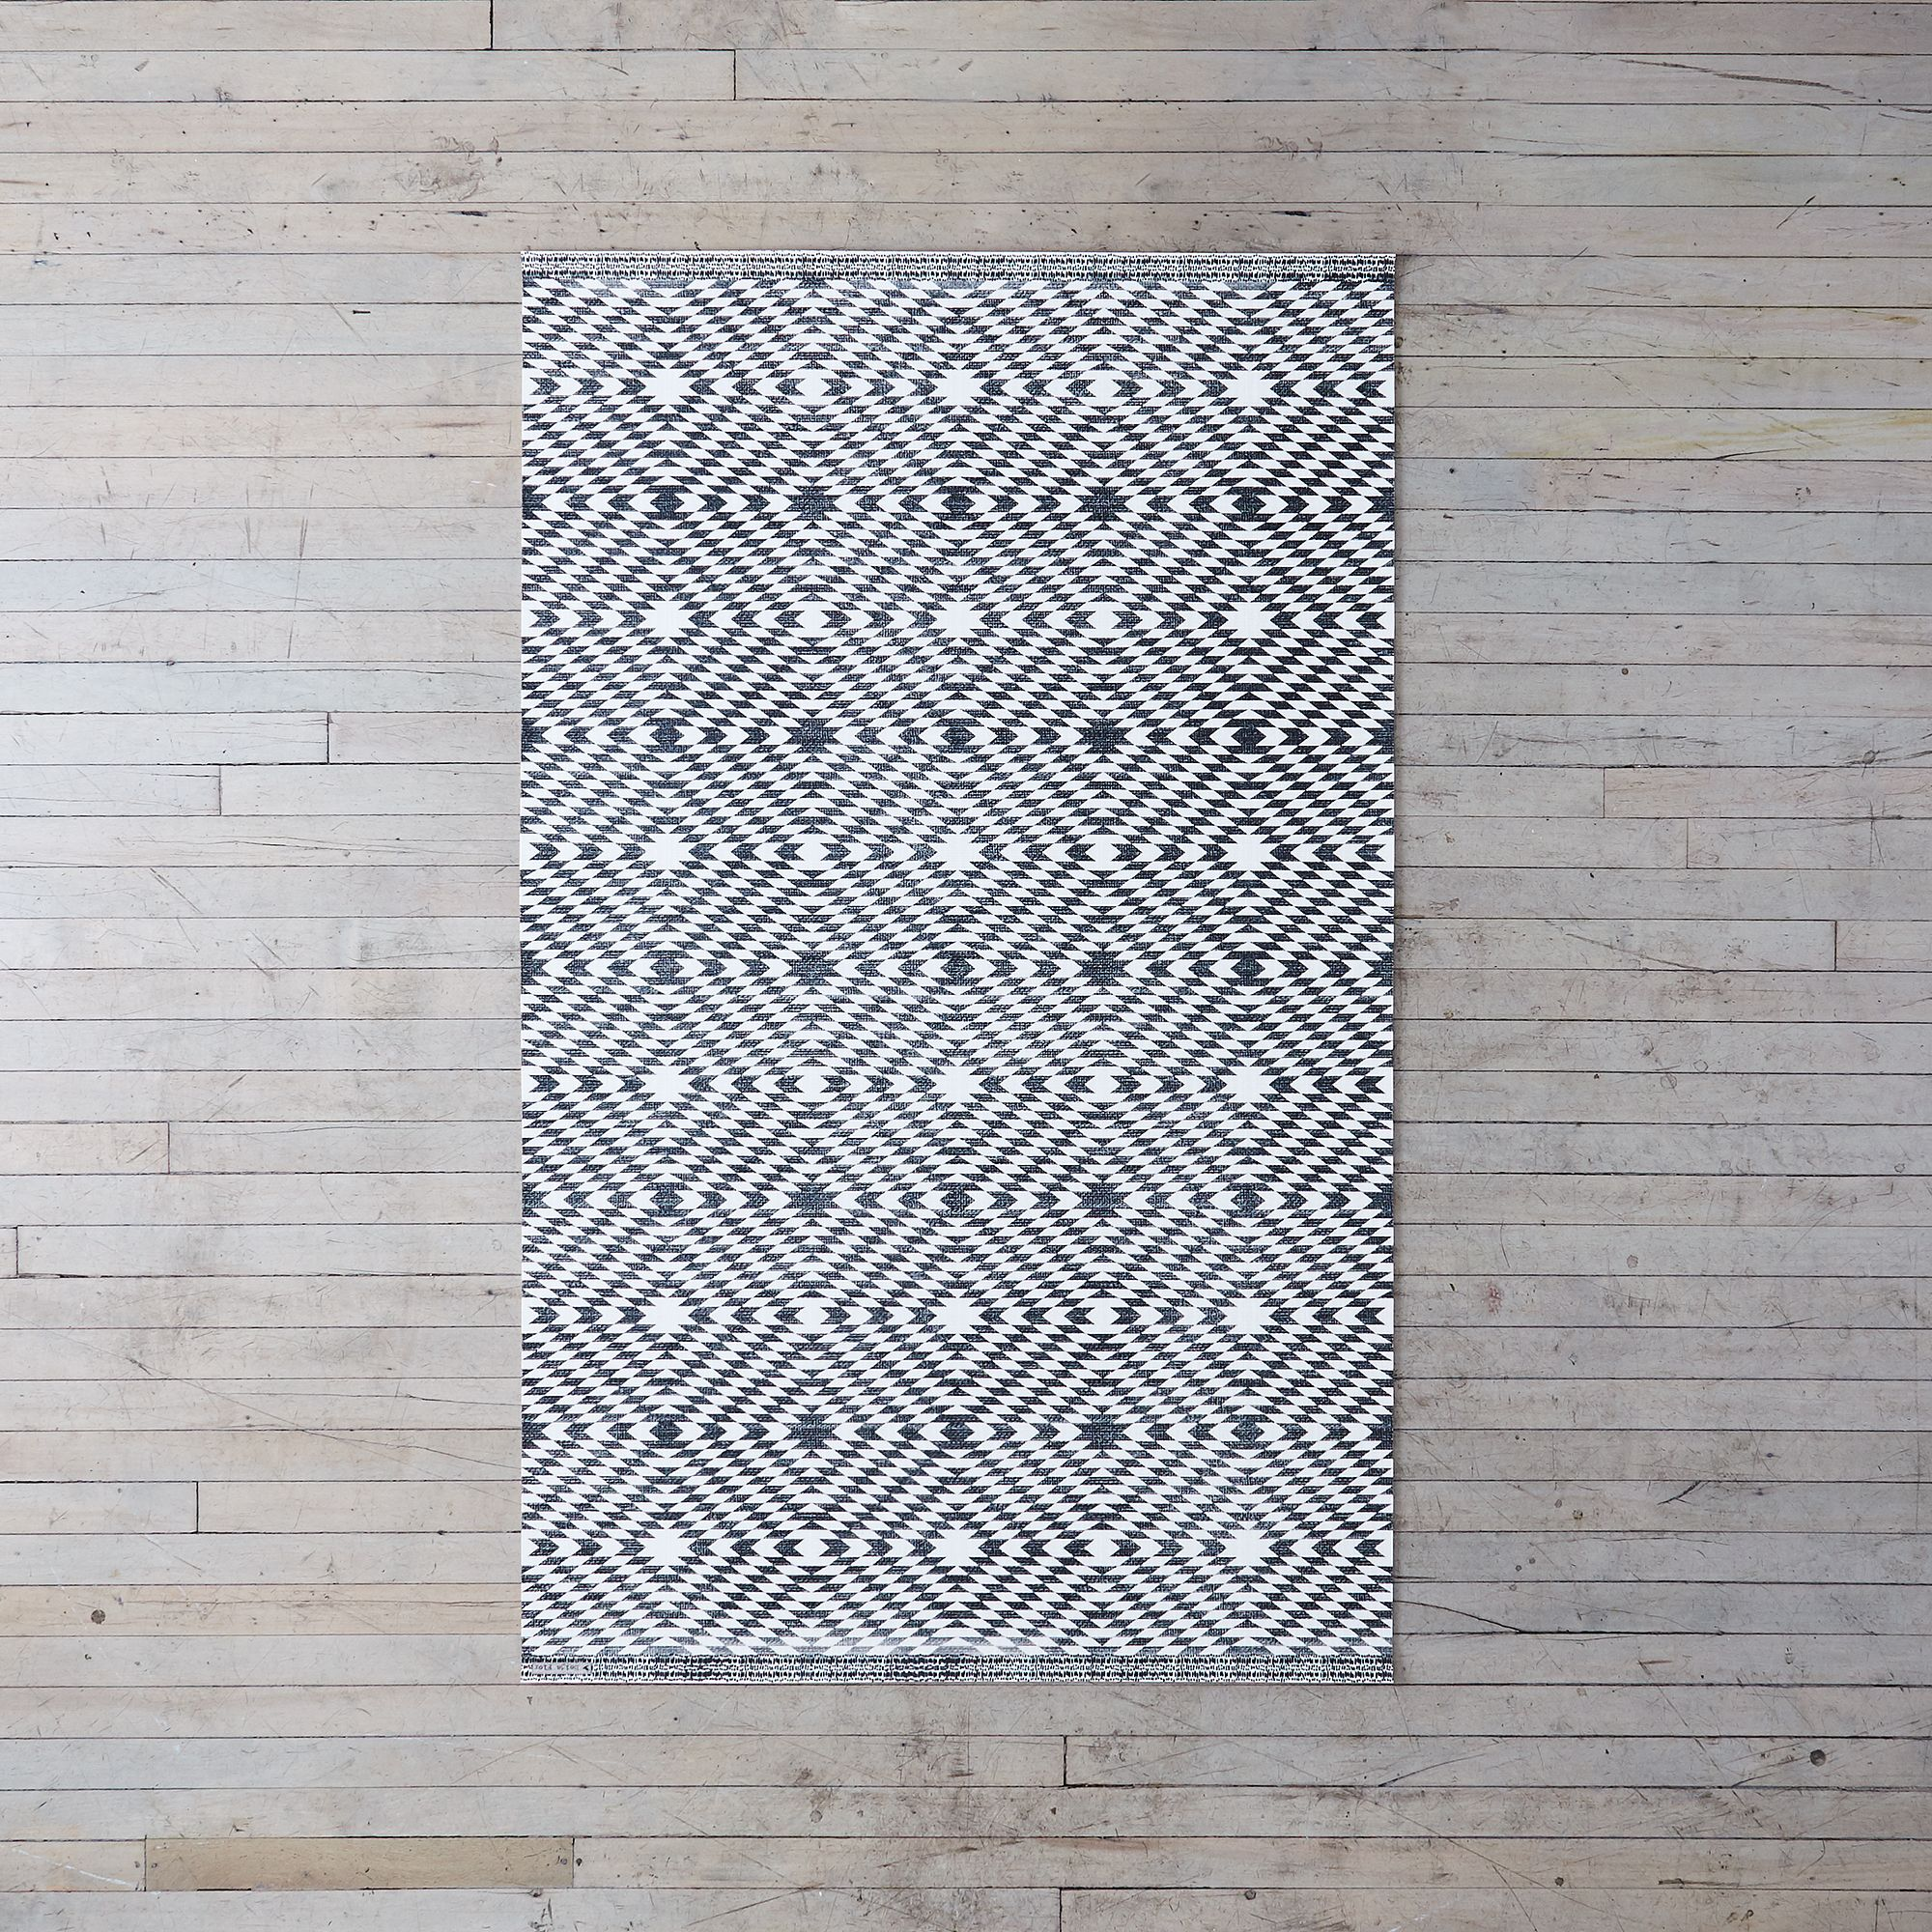 67658044 1232 412f 9647 4089ebeaf881  2017 0628 kiss that frog flatwoven vinyl mat nordic textile black diamond 3 by 5 silo rocky luten 027